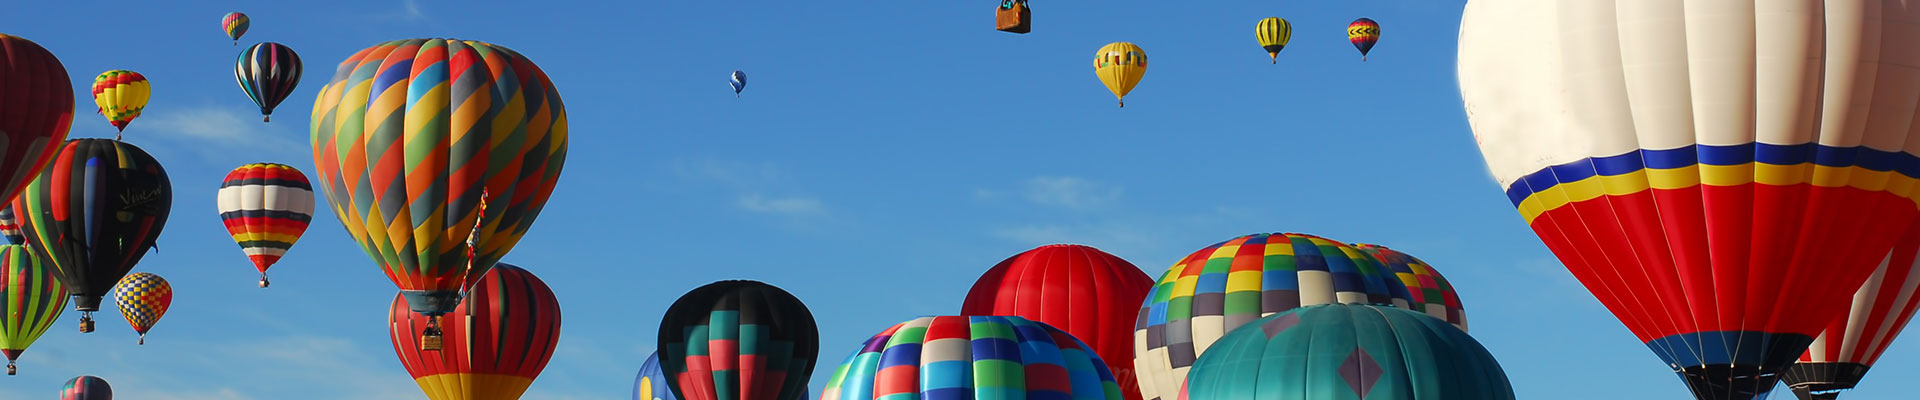 Fantasy RV Tours: 7 Day Albuquerque Balloon Fiesta (07UABW-092922)